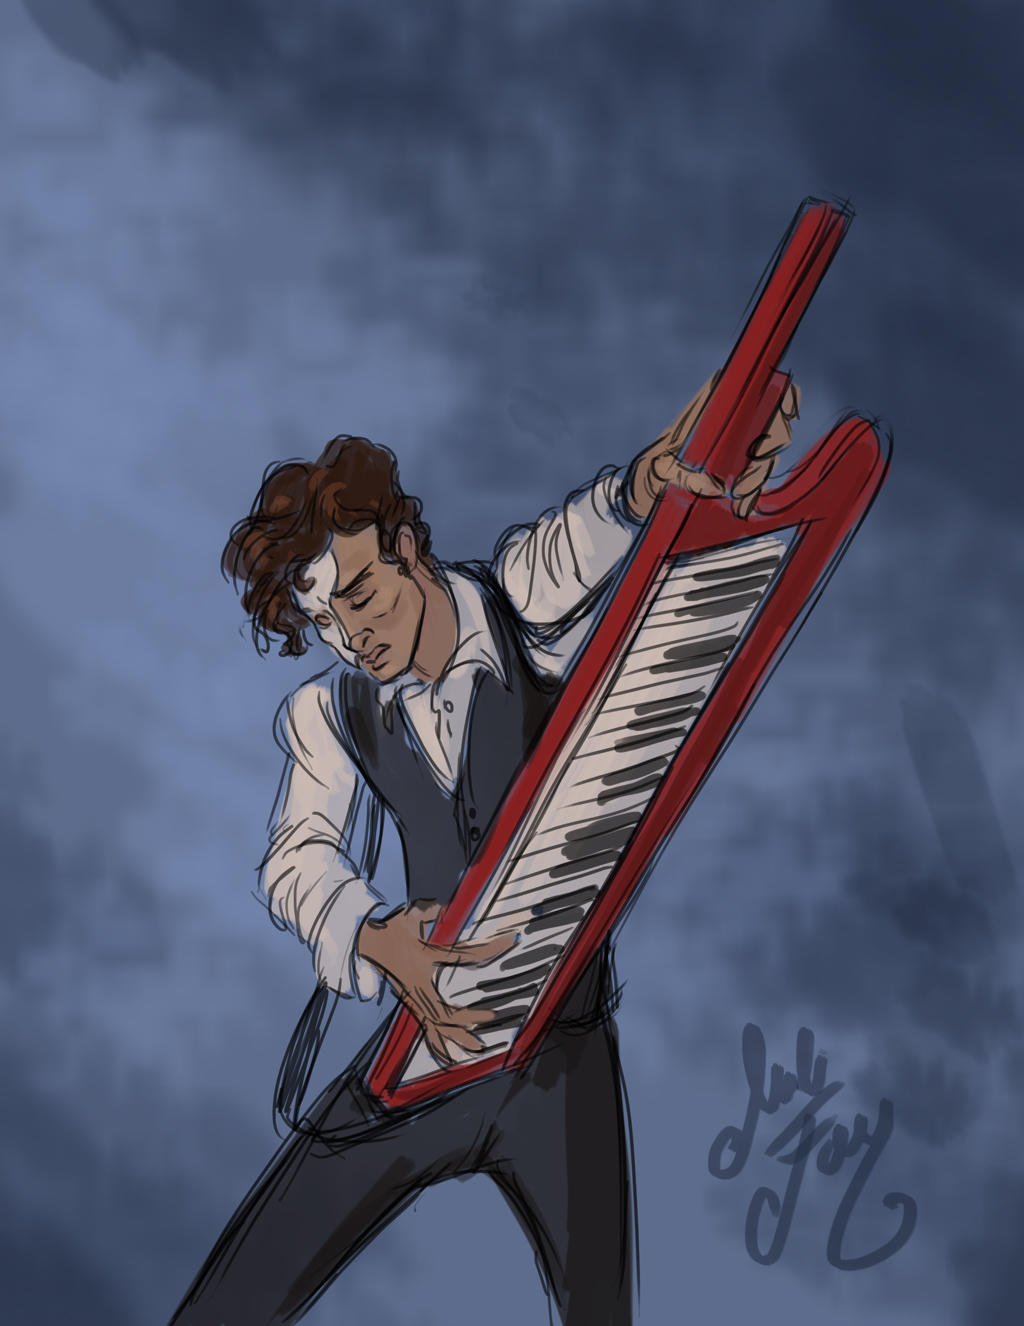 Phantom jammin' with a Keytar.